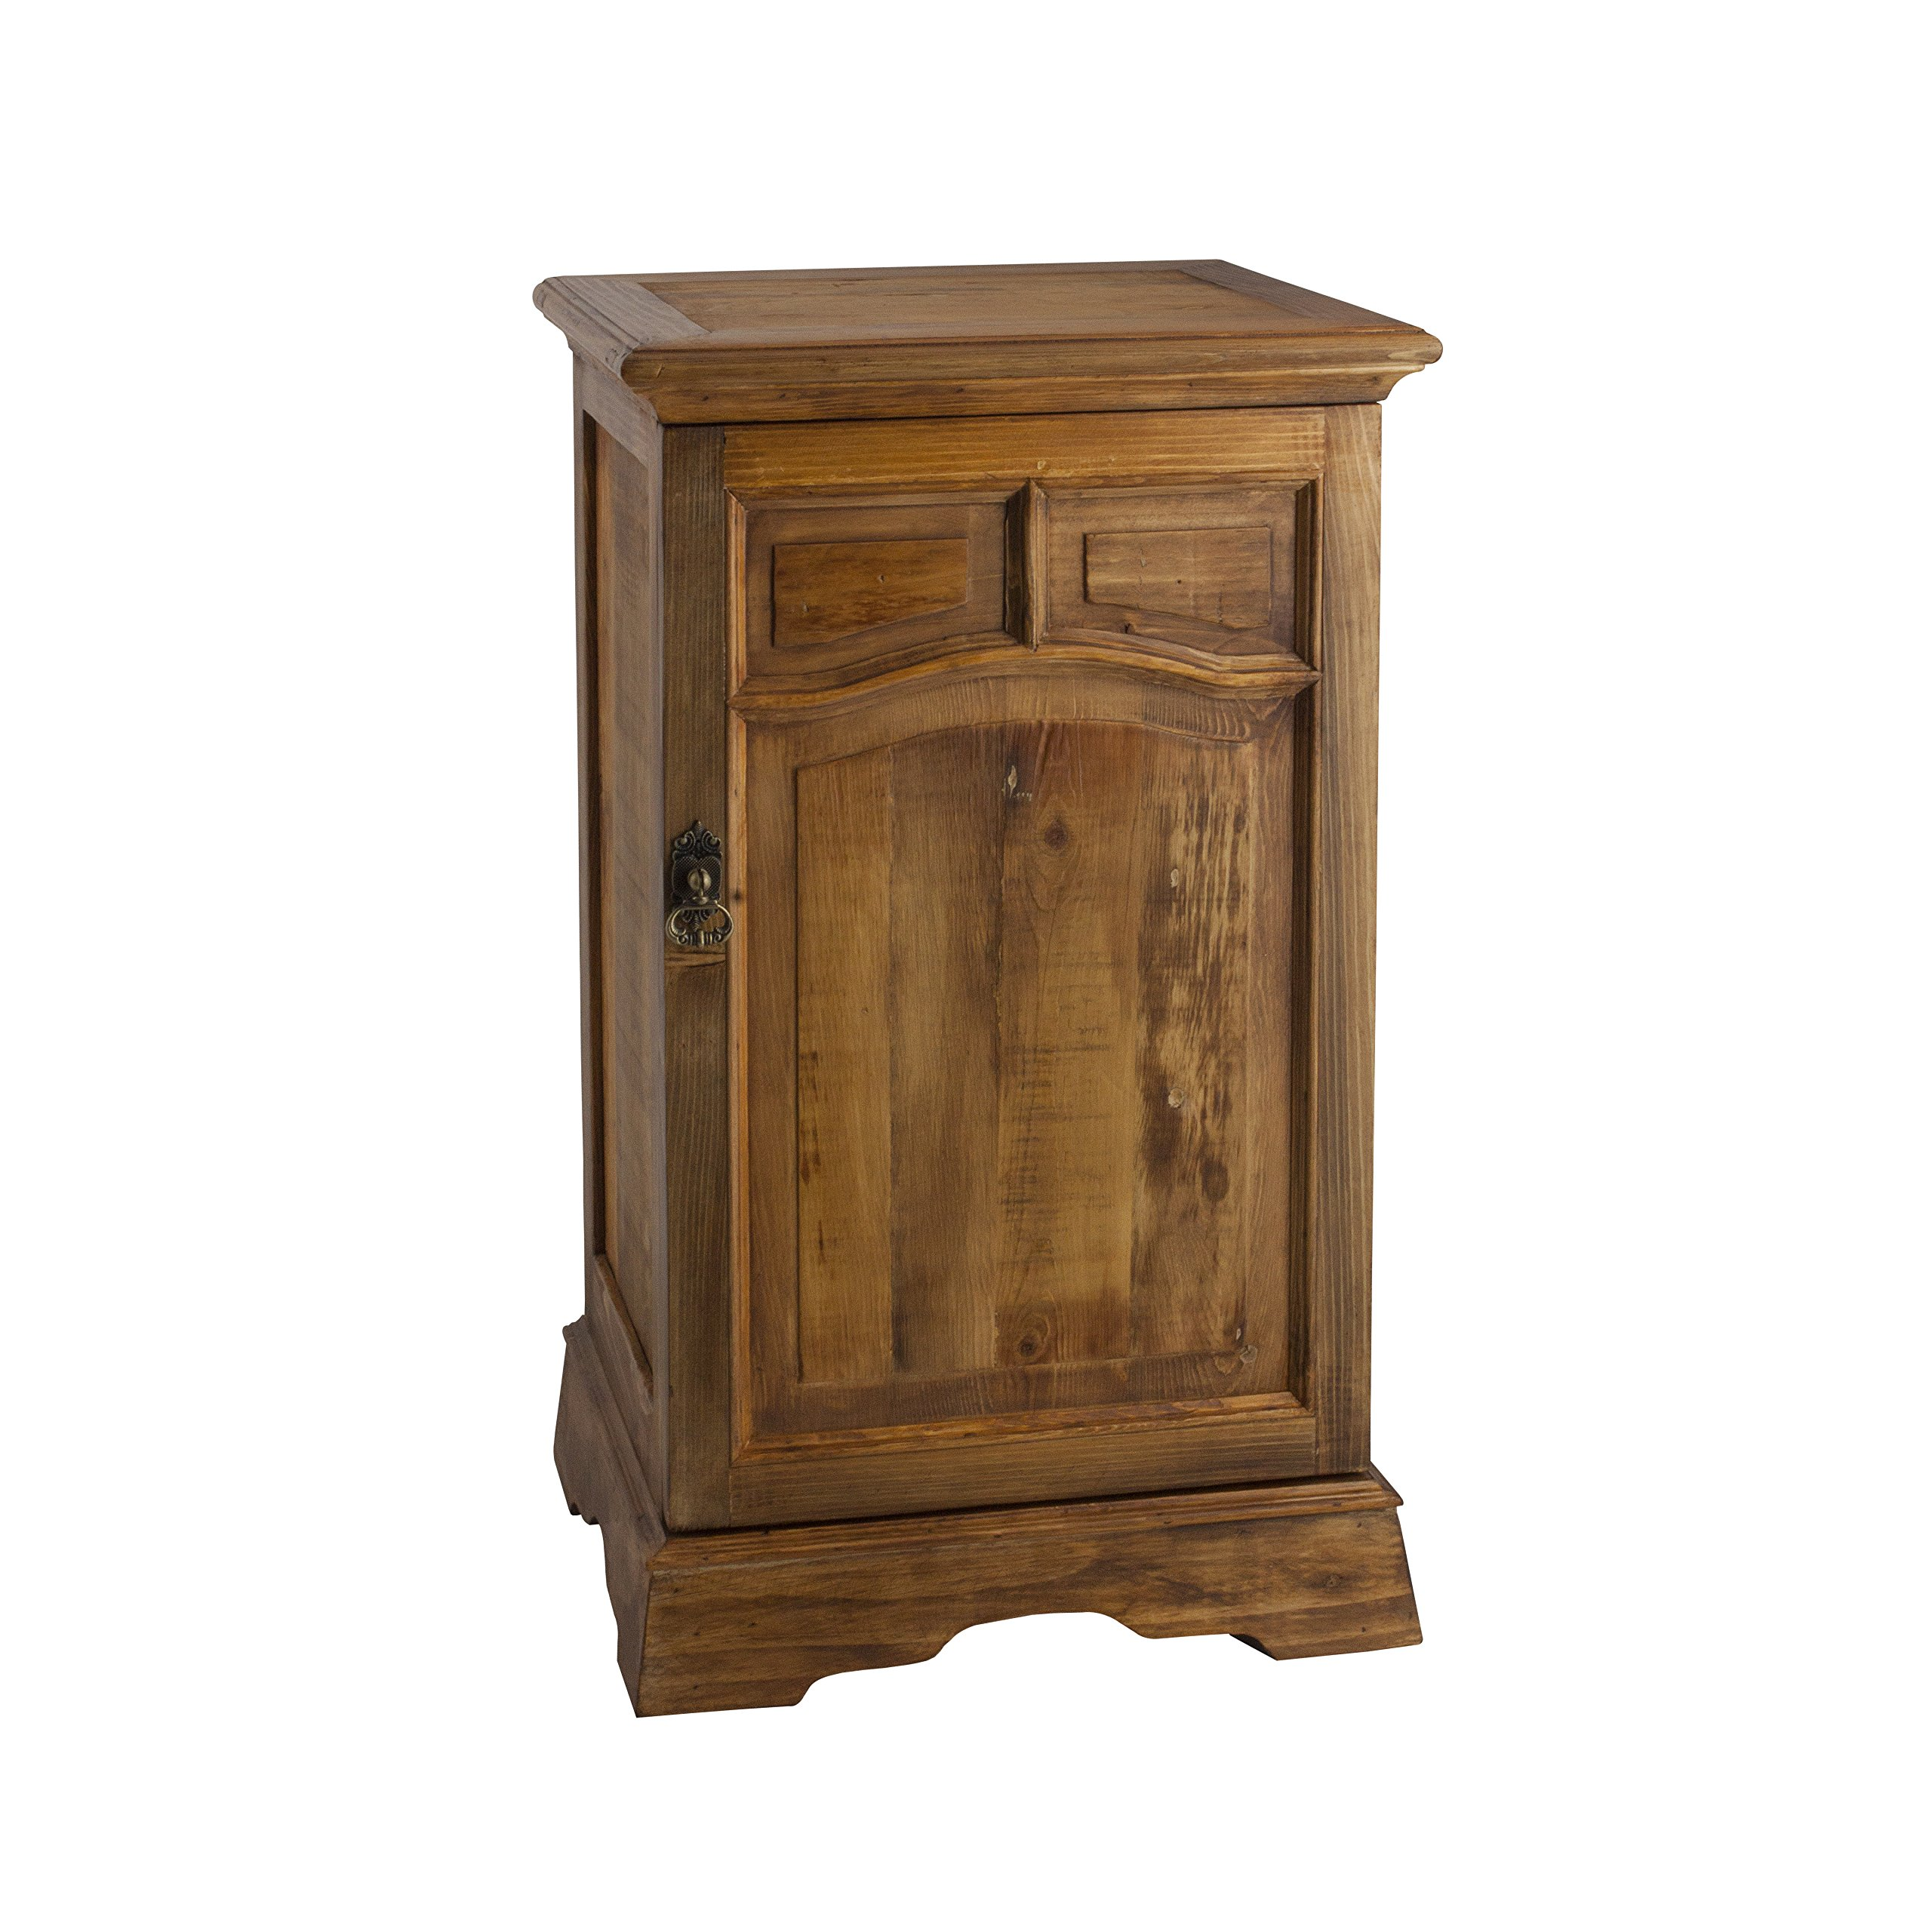 PL Home Wooden Base with Door by Porthos Home